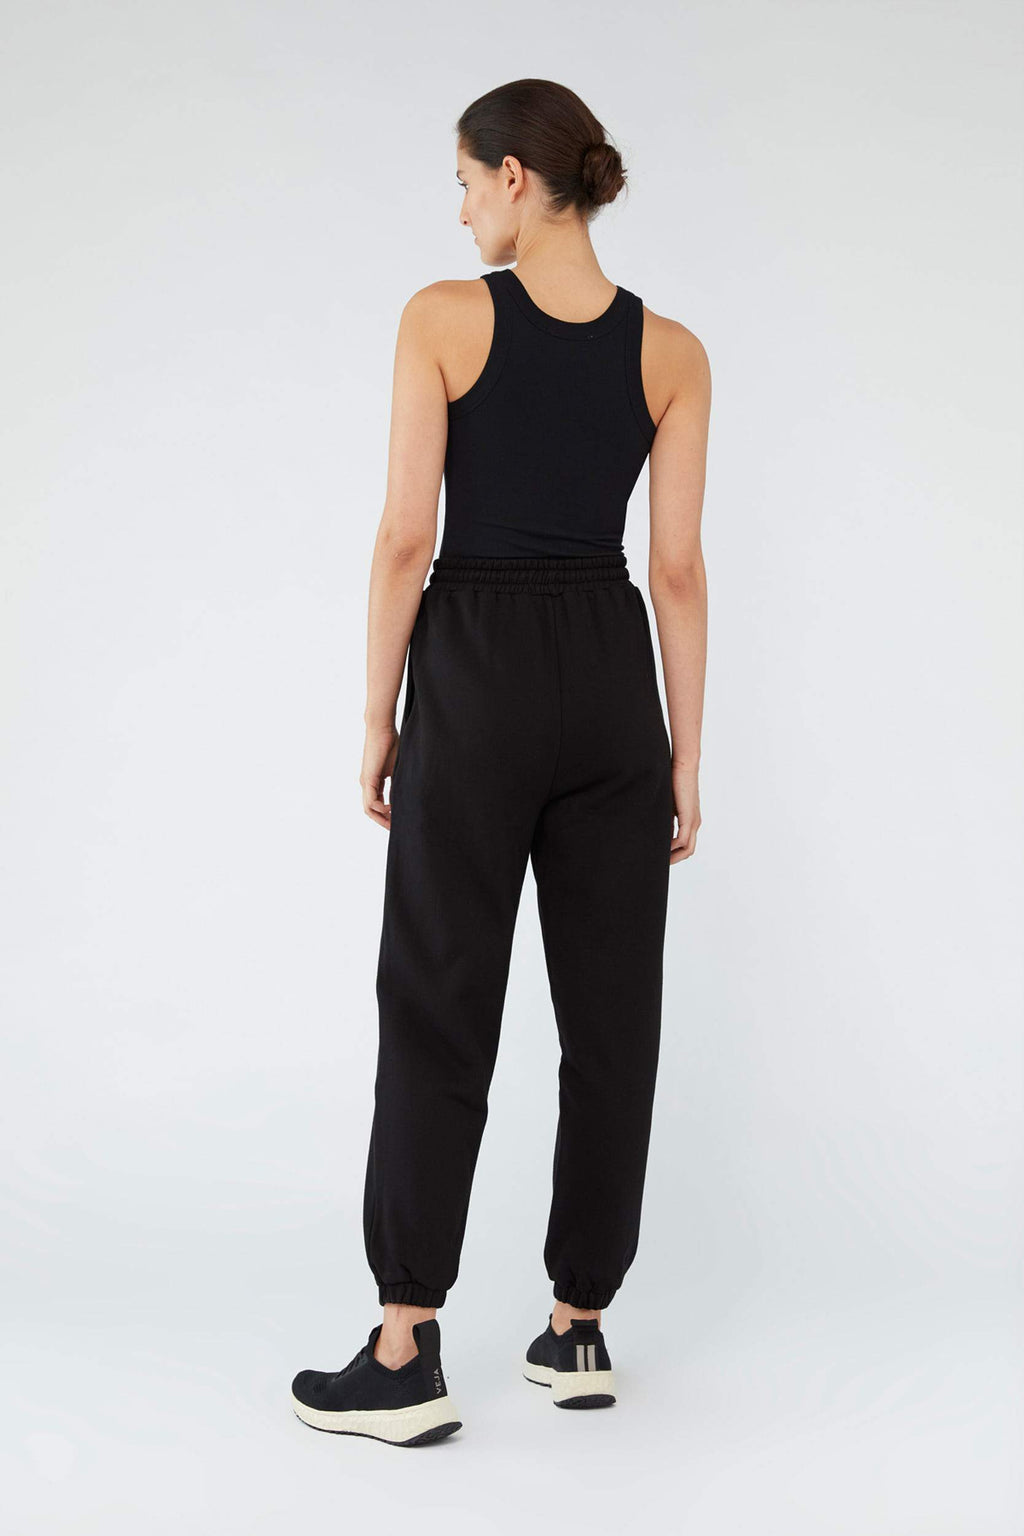 Camilla And Marc / Denver Track Pant / Black w White